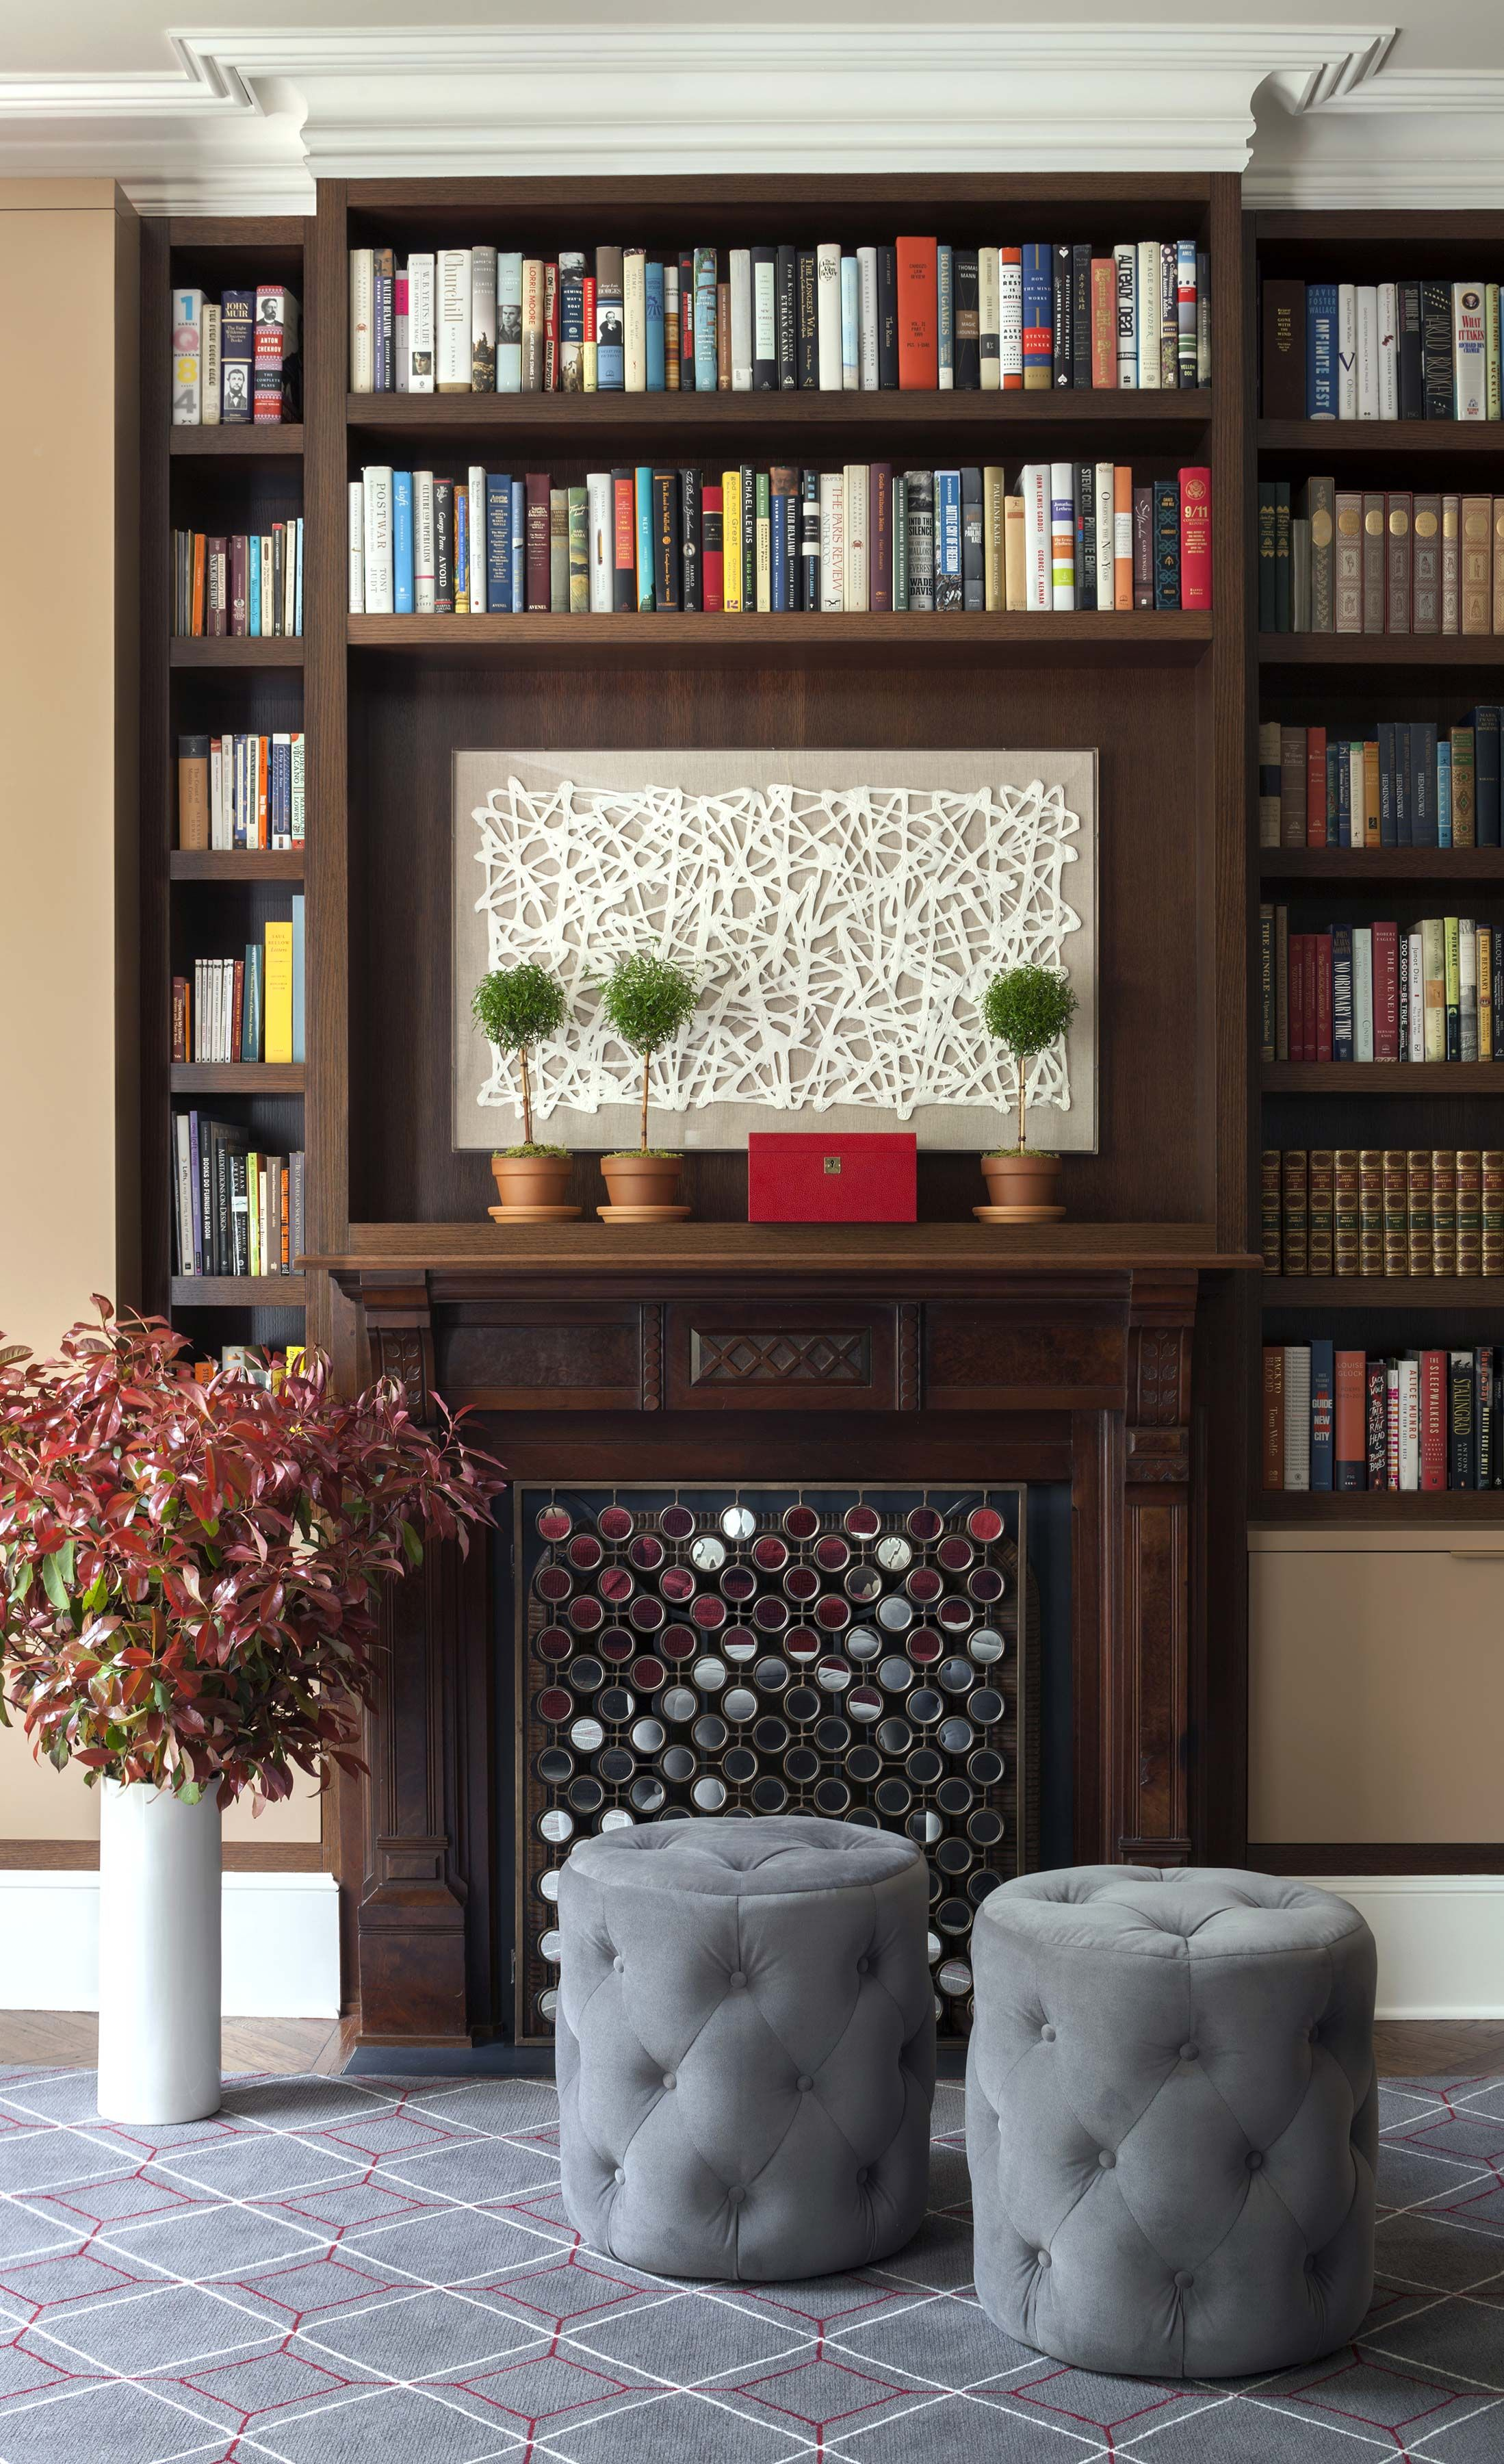 Townhouse Living Room Design: Brooklyn Heights Townhouse (With